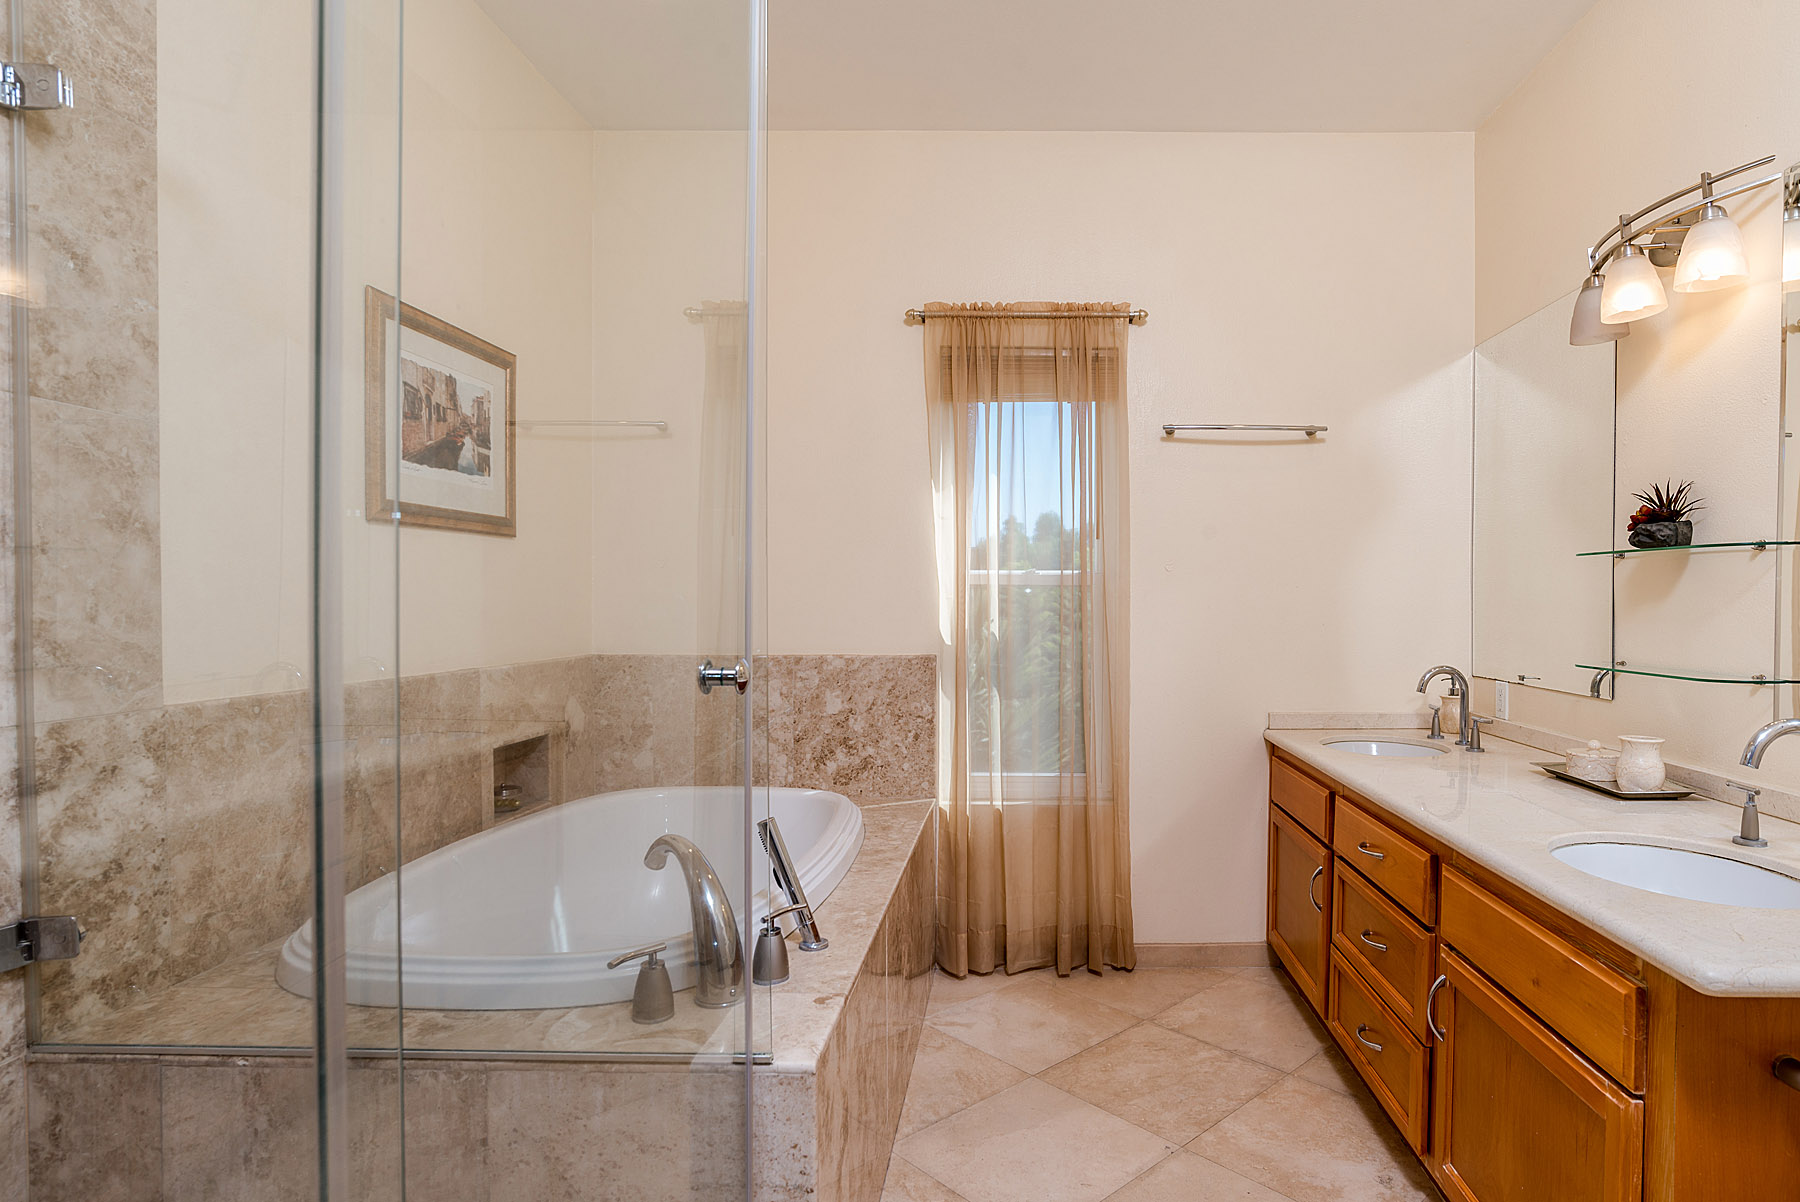 The master bedroom's en suite bath also features a tub and marble imported from Italy.